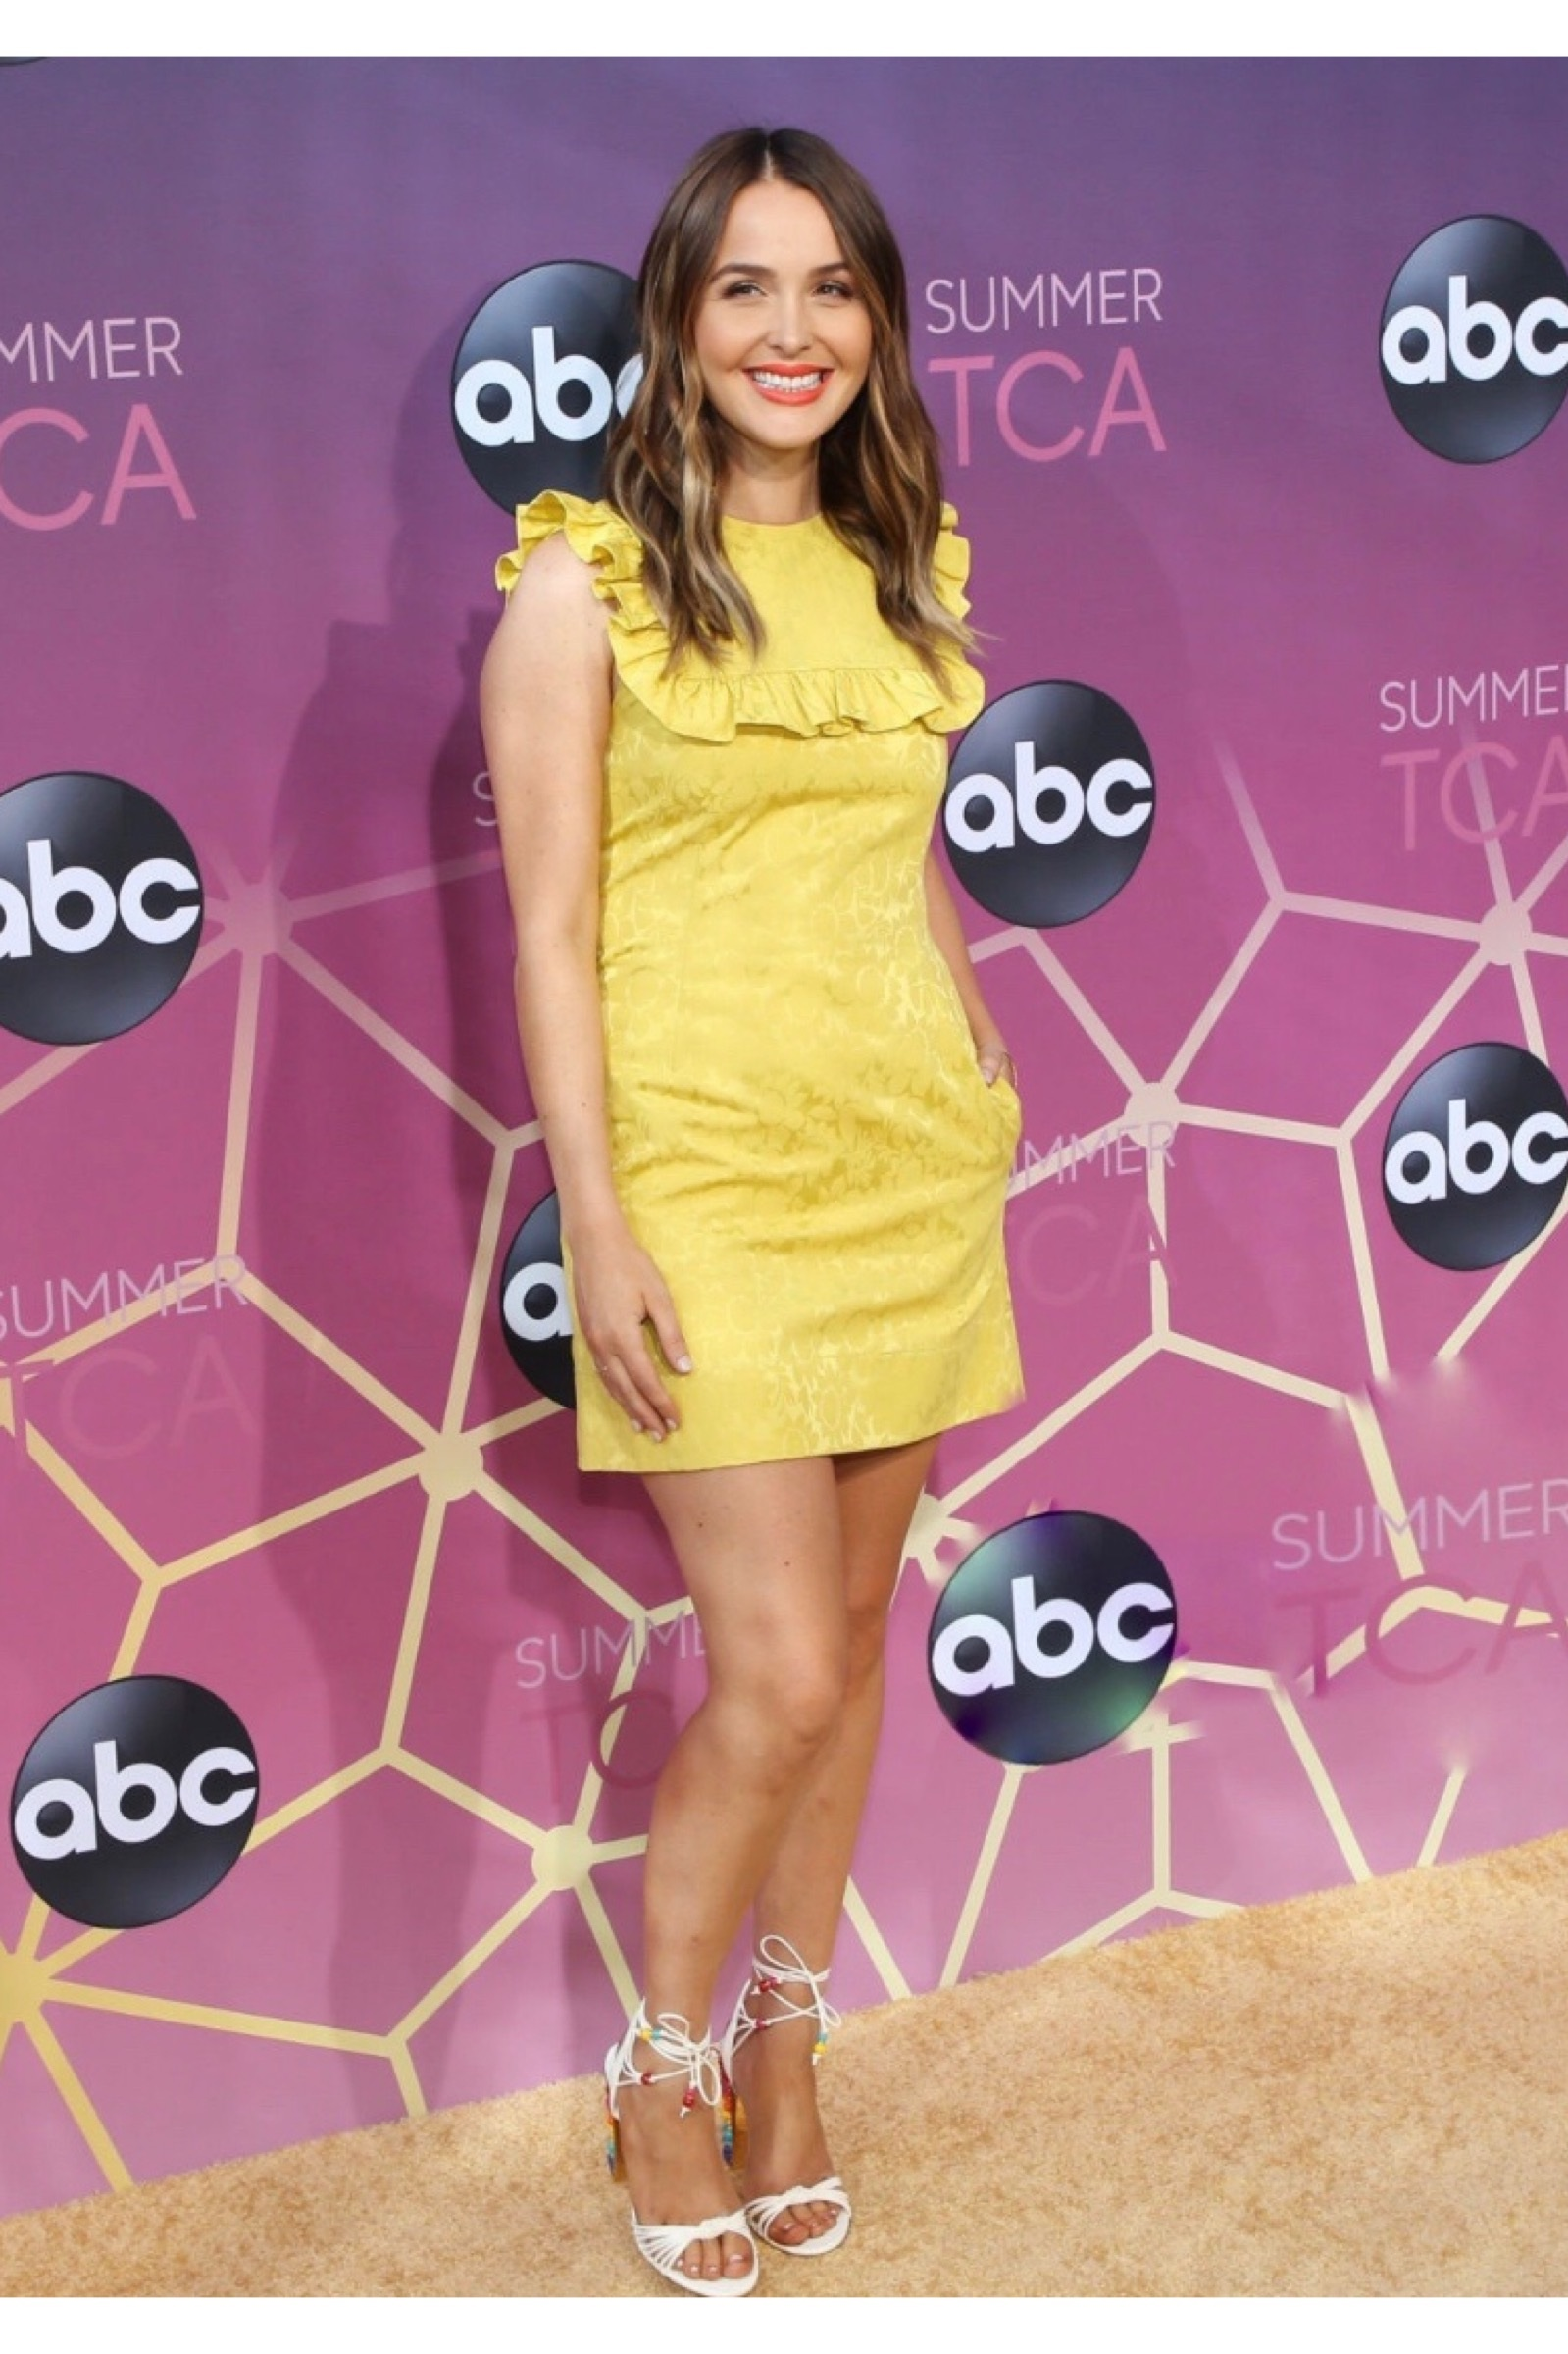 Camilla Luddington for ABC TCA party August 2019/ Styled by Natalie Hoselton